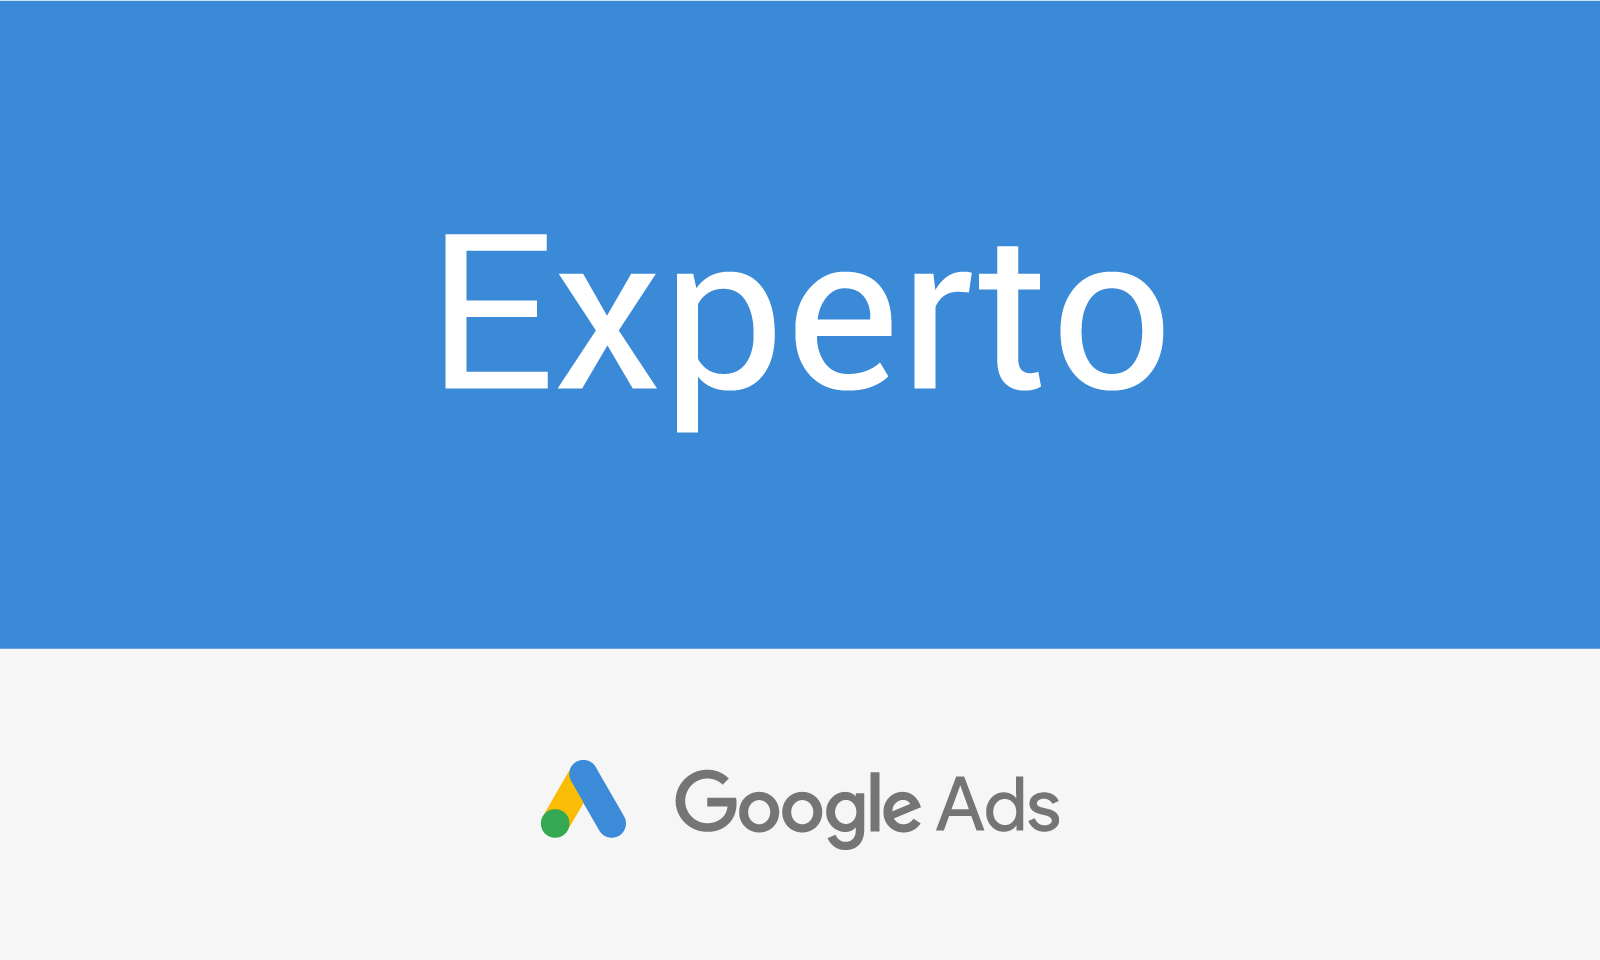 Inteligenzia - Curso Google Marketing Digital / Experto